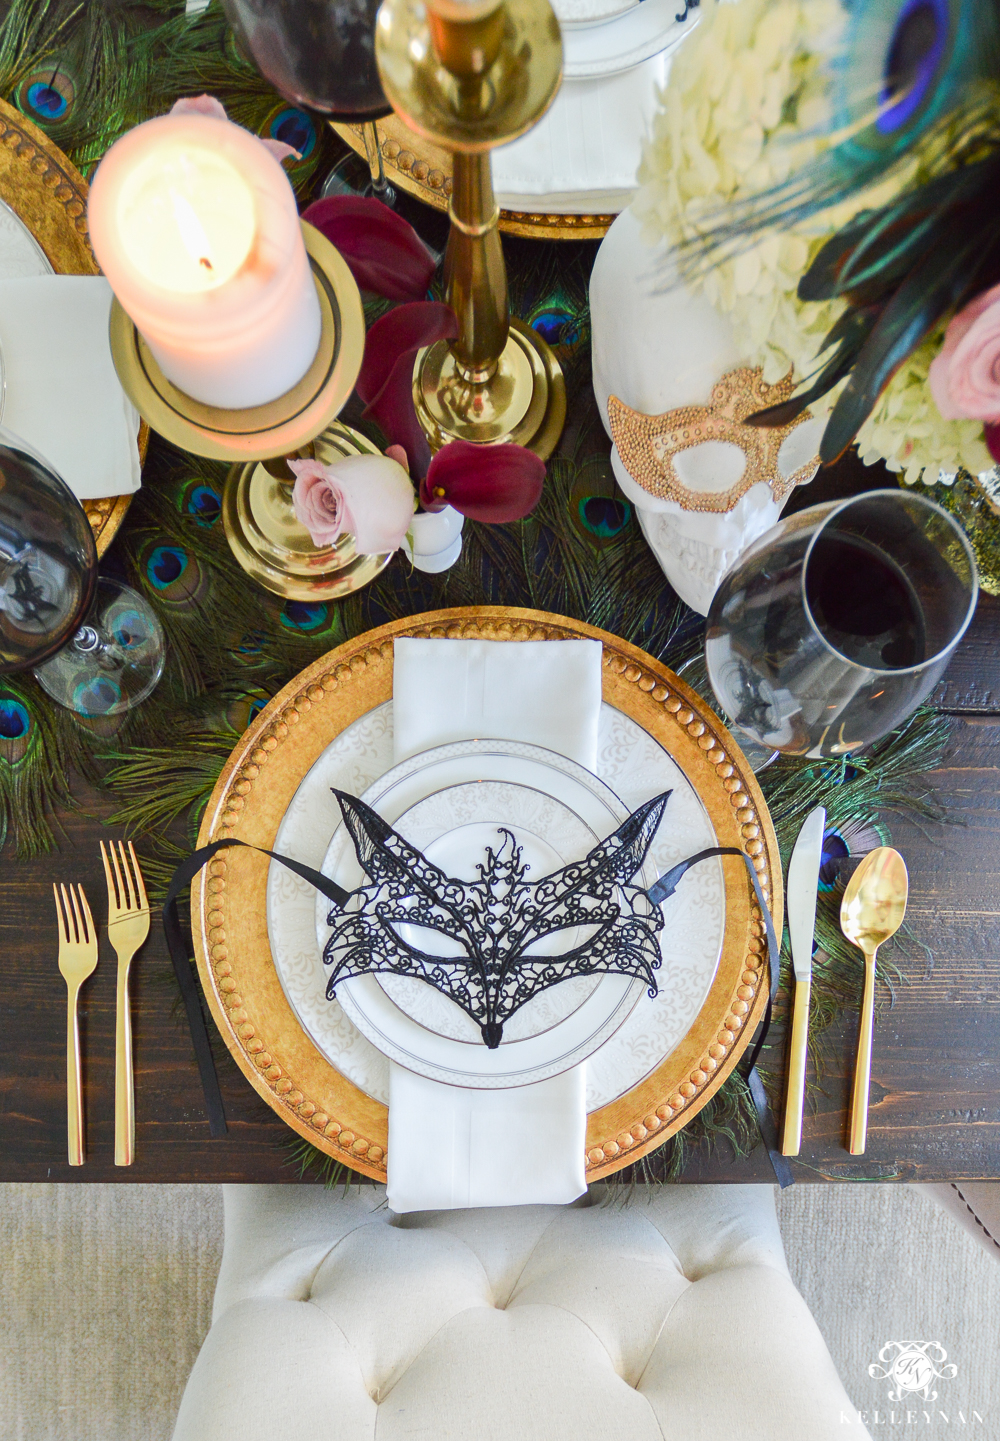 Masquerade Dinner Party for Halloween with Full Table Setting_-mask place setting ideas